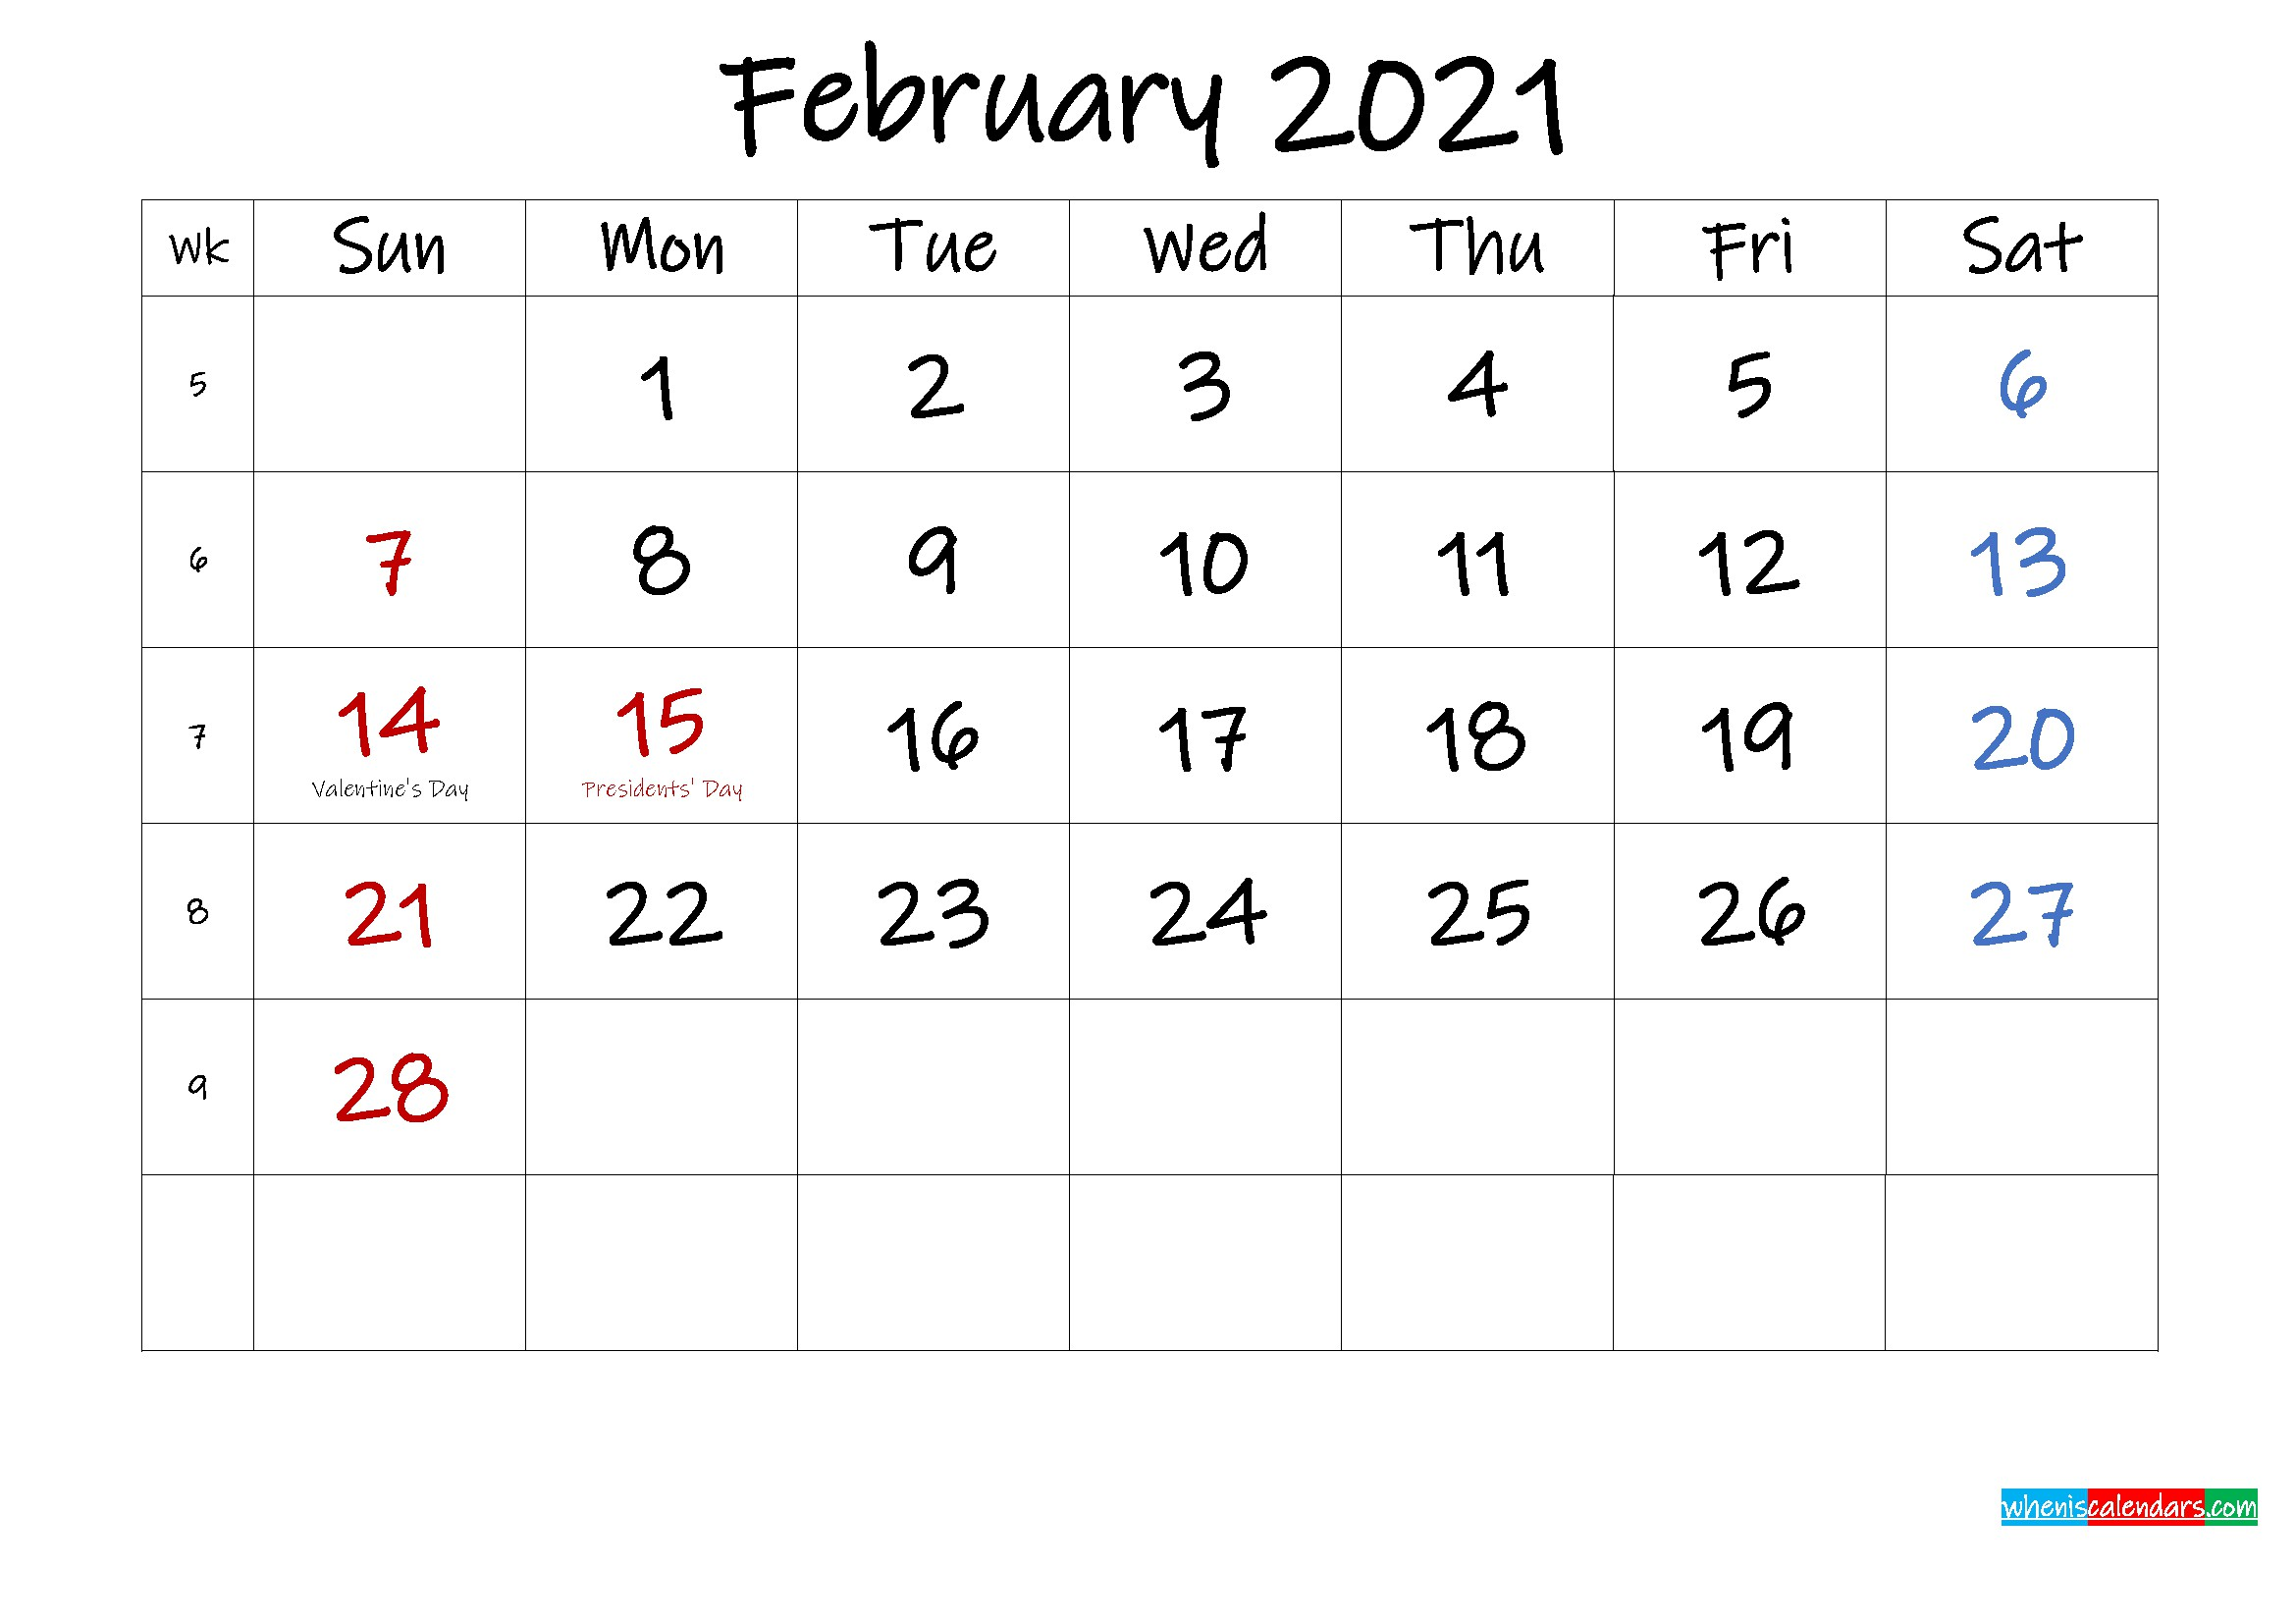 30 Free February 2021 Calendars for Home or fice edesb